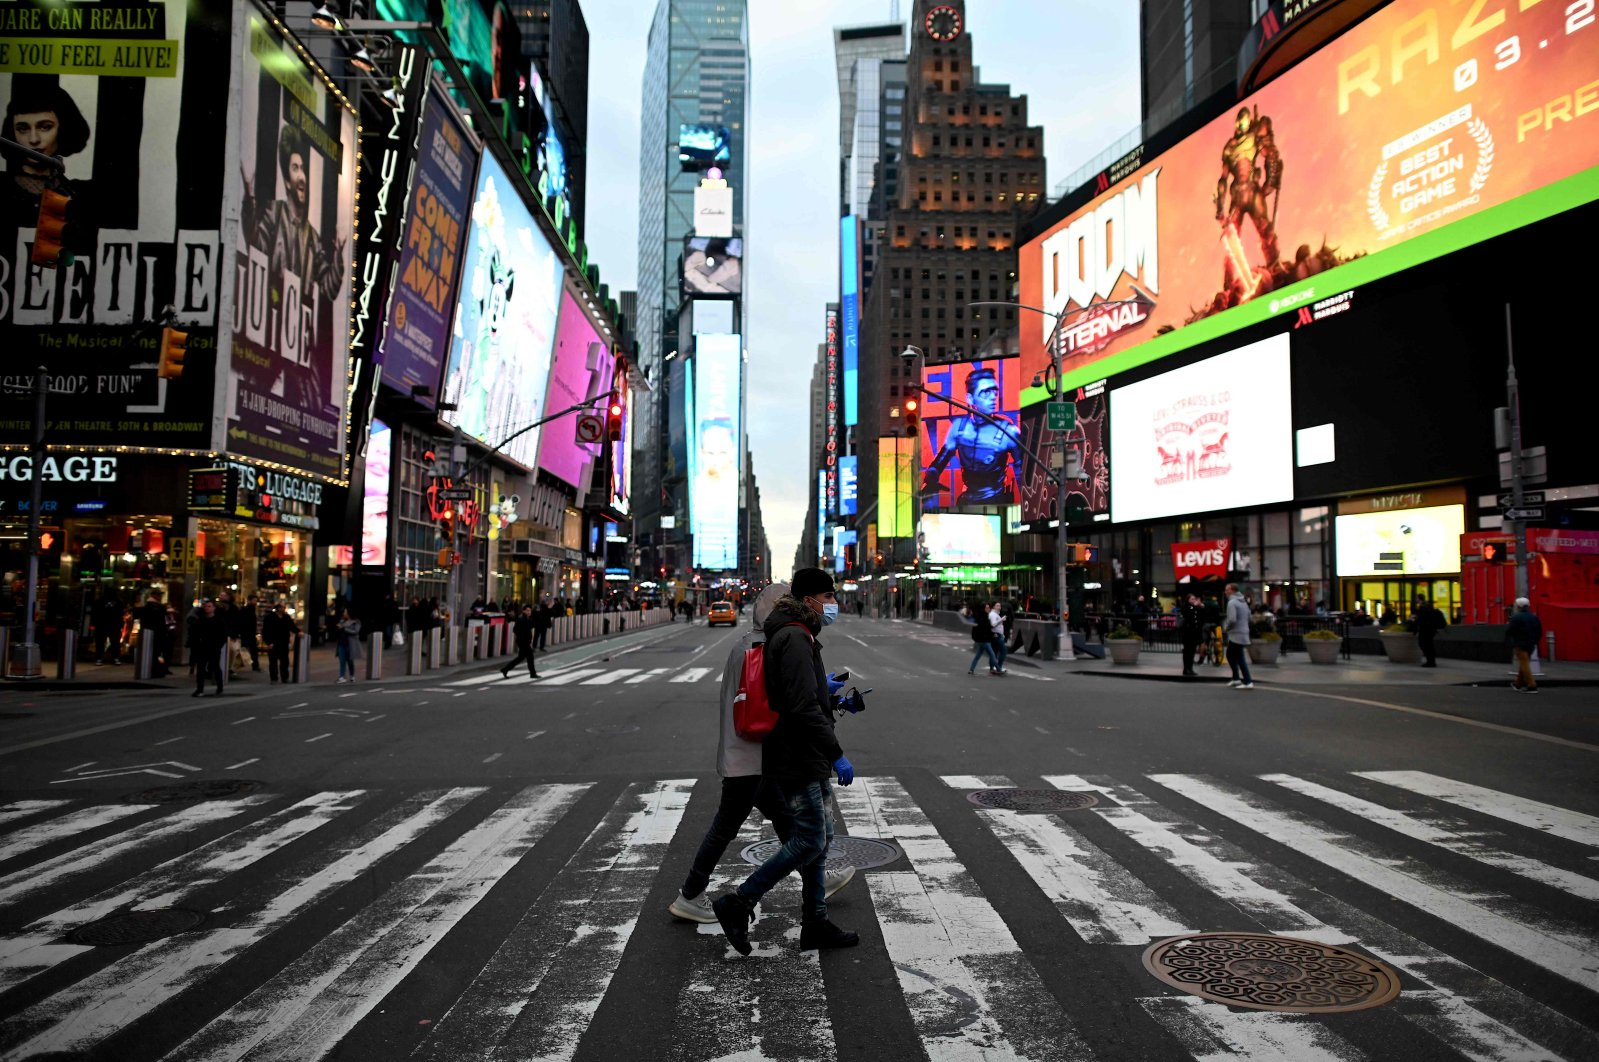 People wearing masks cross the street in Times Square in Manhattan, New York City, Tuesday, March 17, 2020. (AFP Photo)